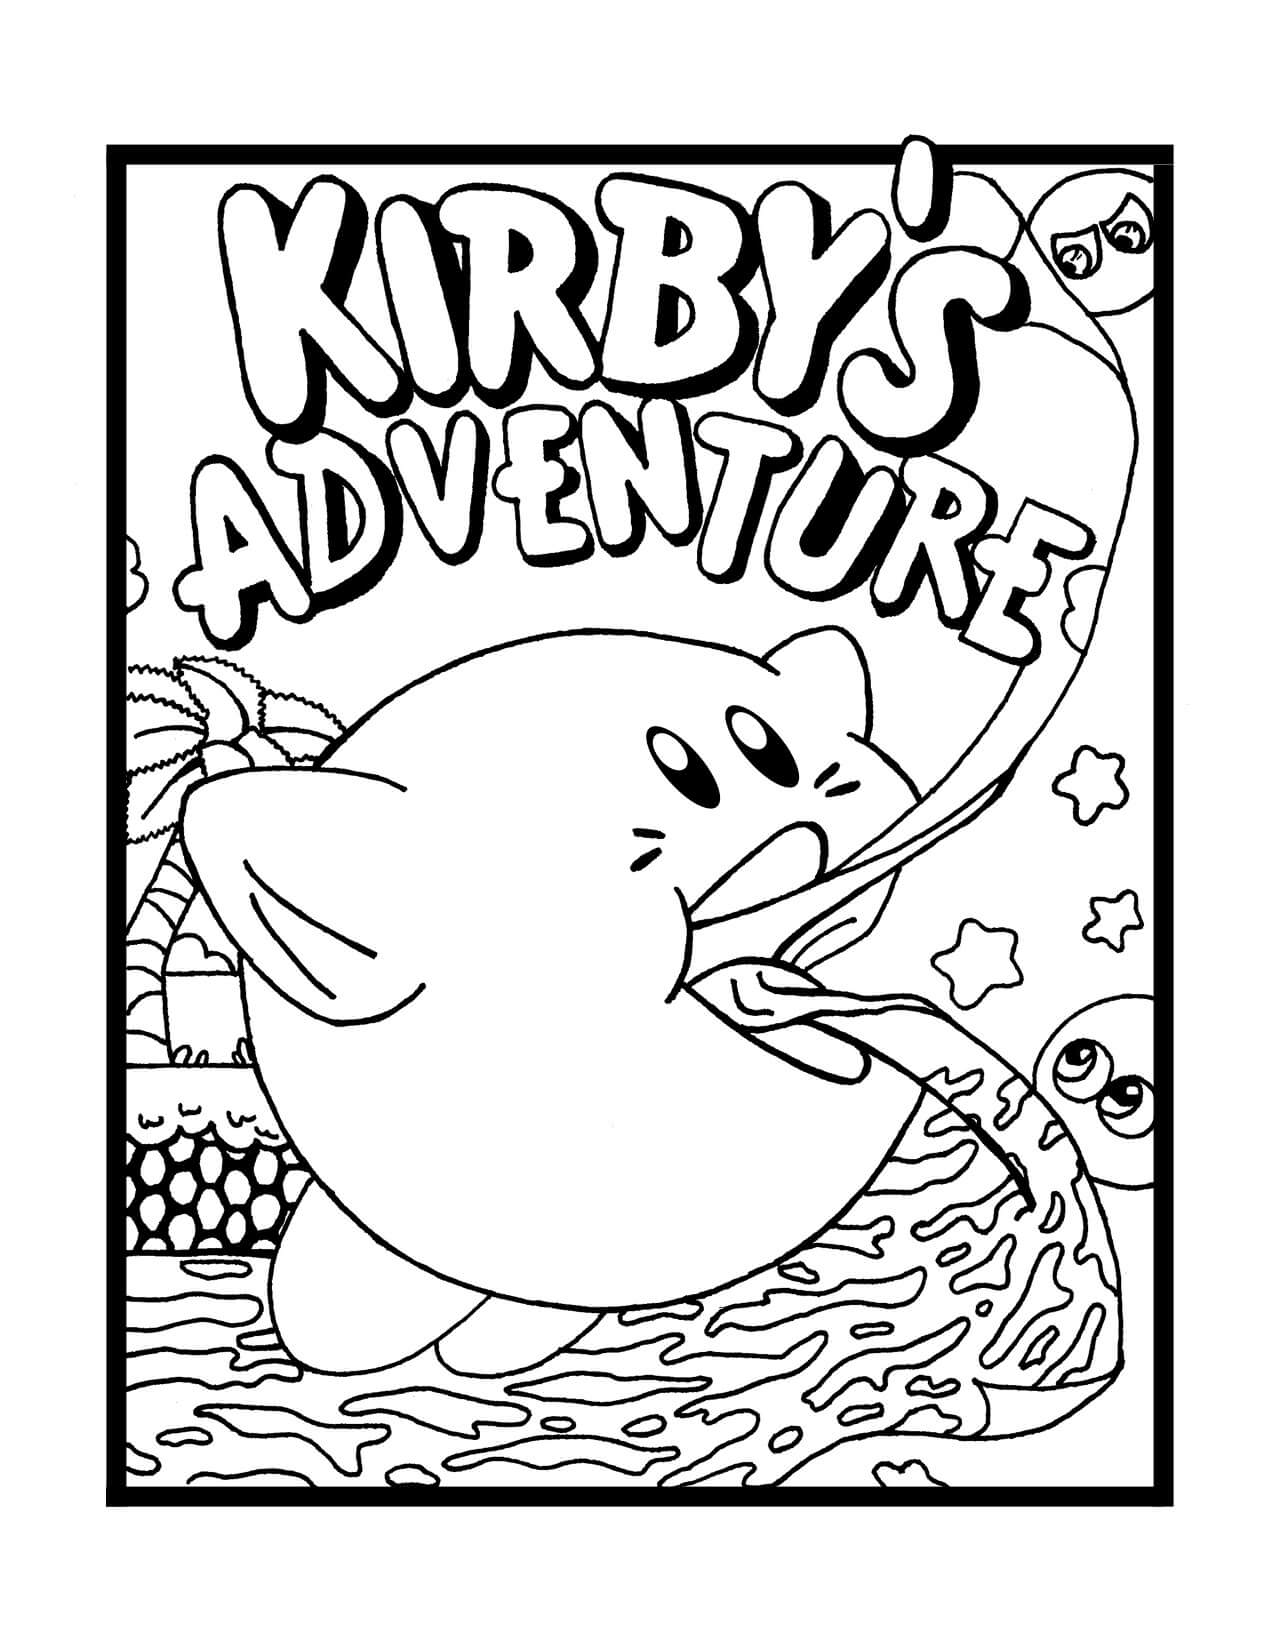 Kirby's Adventure Coloring Pages